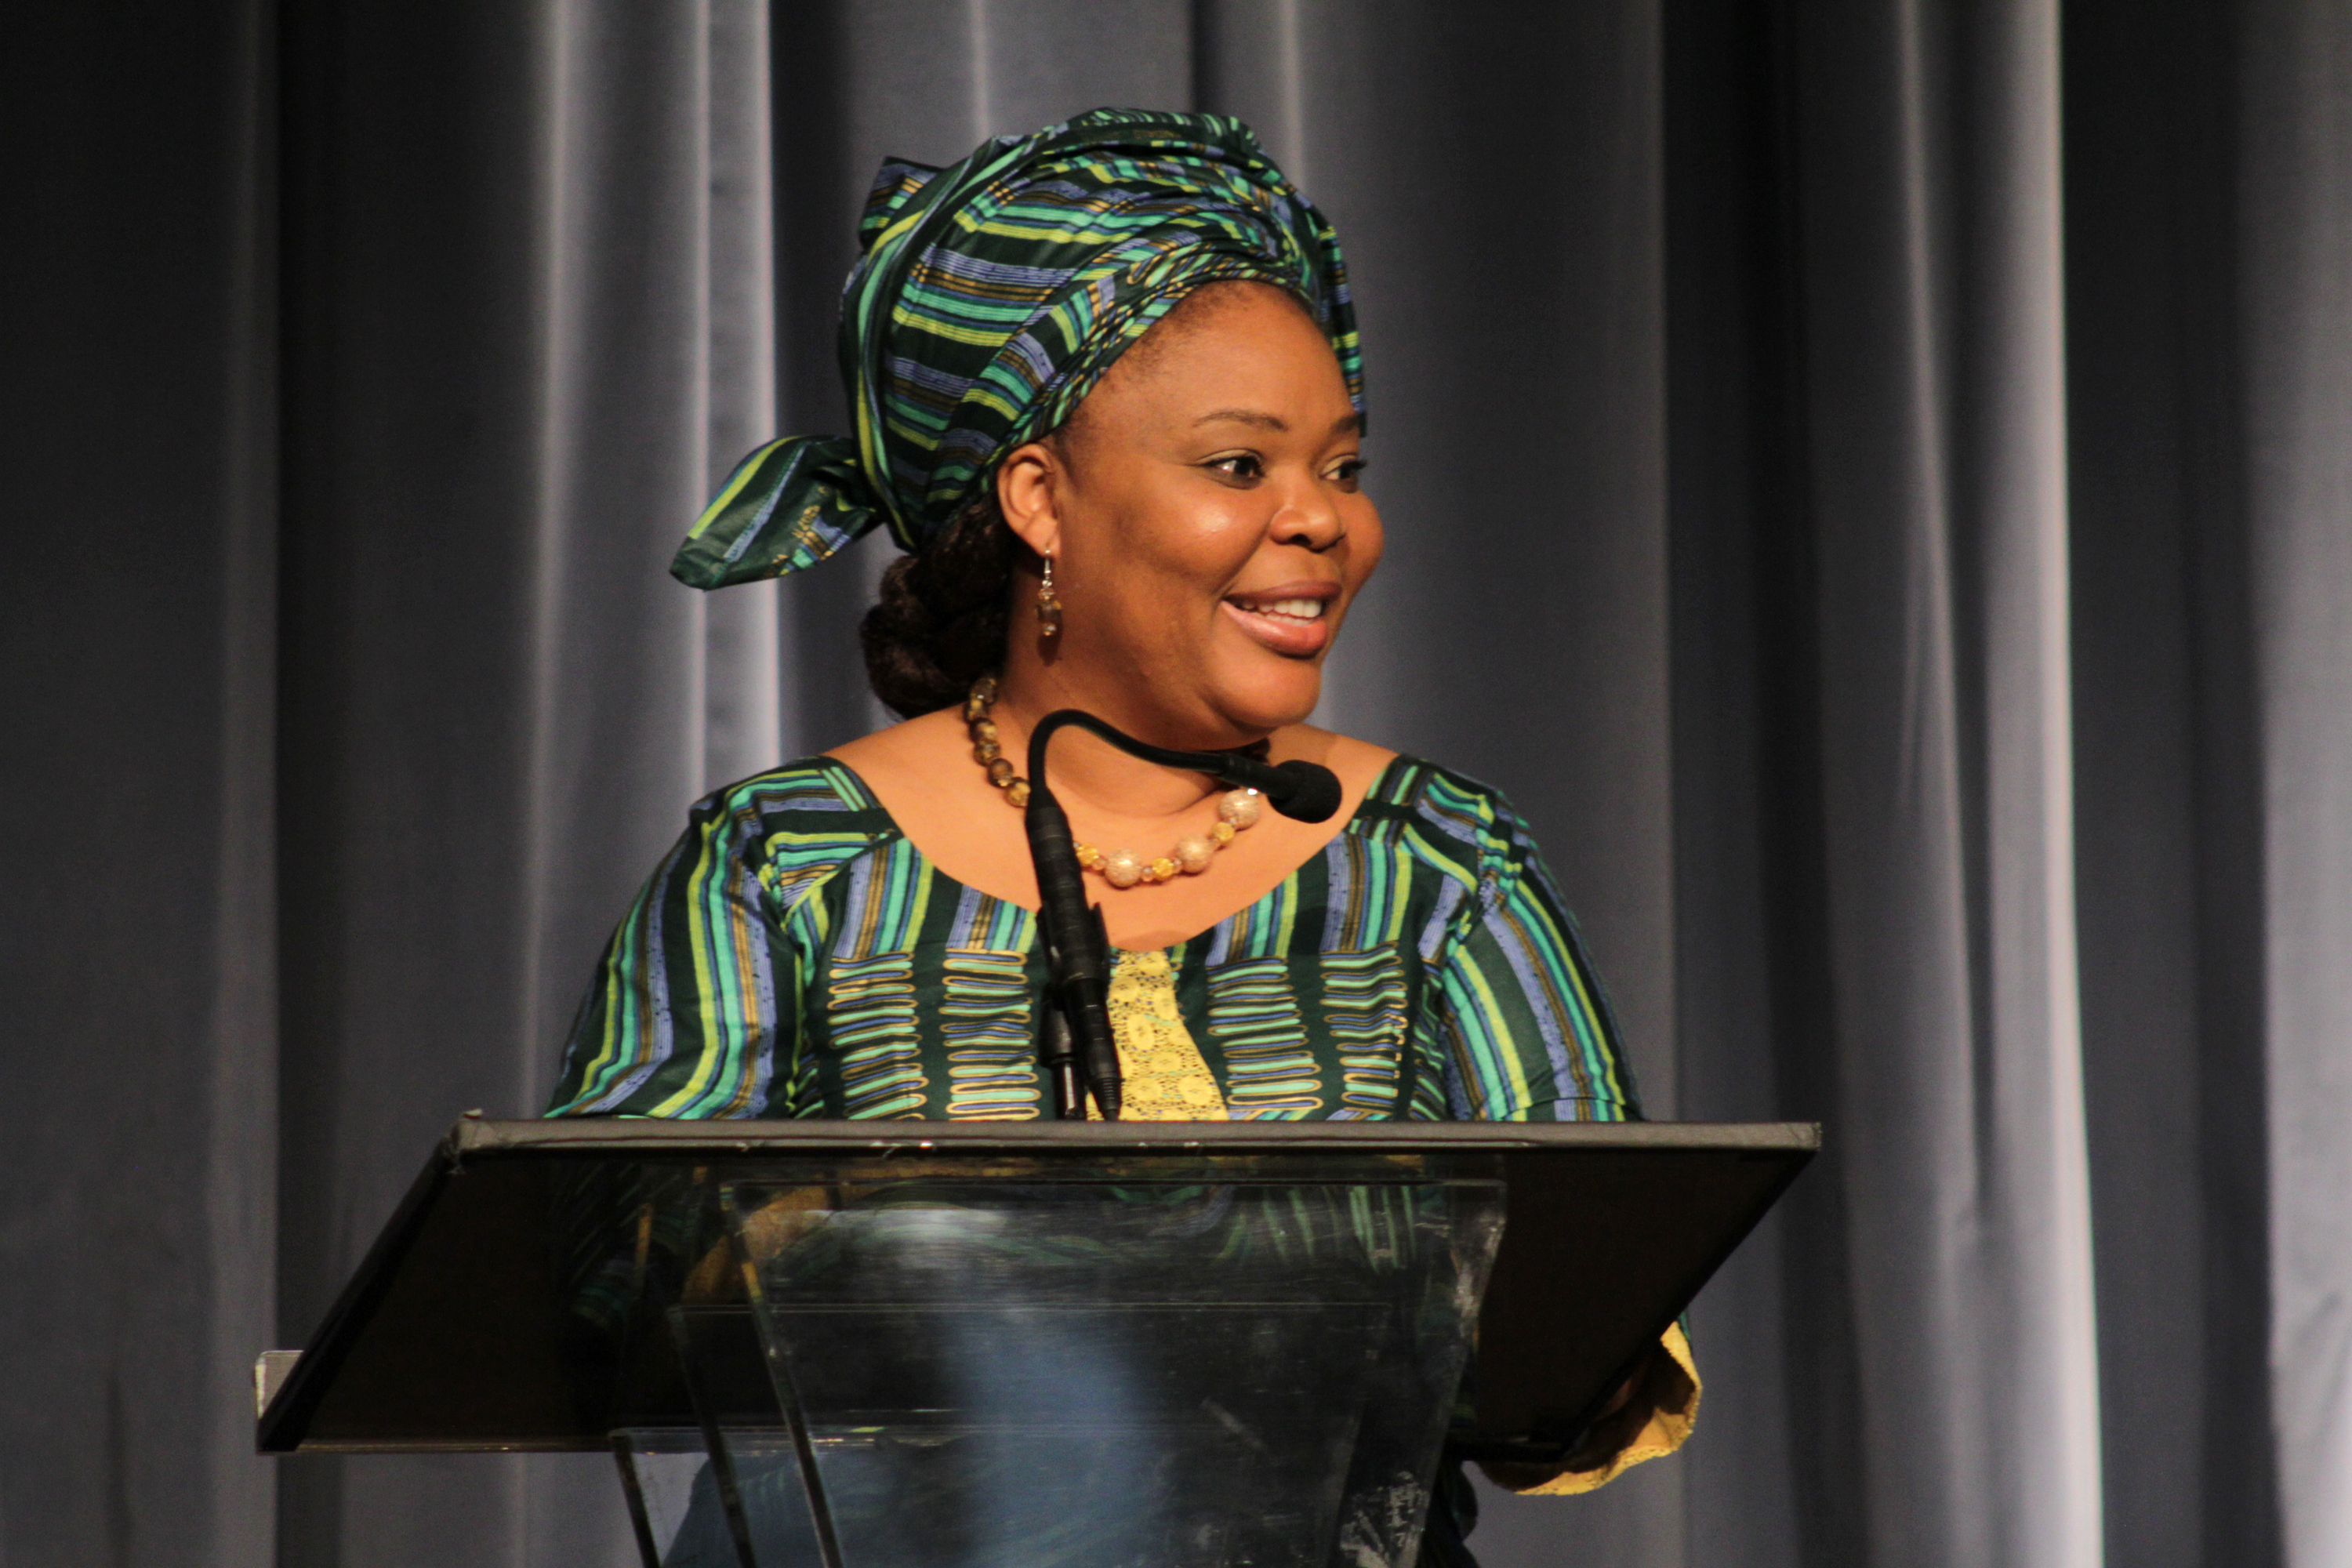 Nobel Peace Laureate Leymah Gbowee speaks about  The Role of Women at the Front Lines of Peace Building  during a Visionary Women Salon at the Beverly Wilshire Four Seasons Hotel in Beverly Hills, California on May 5, 2015.